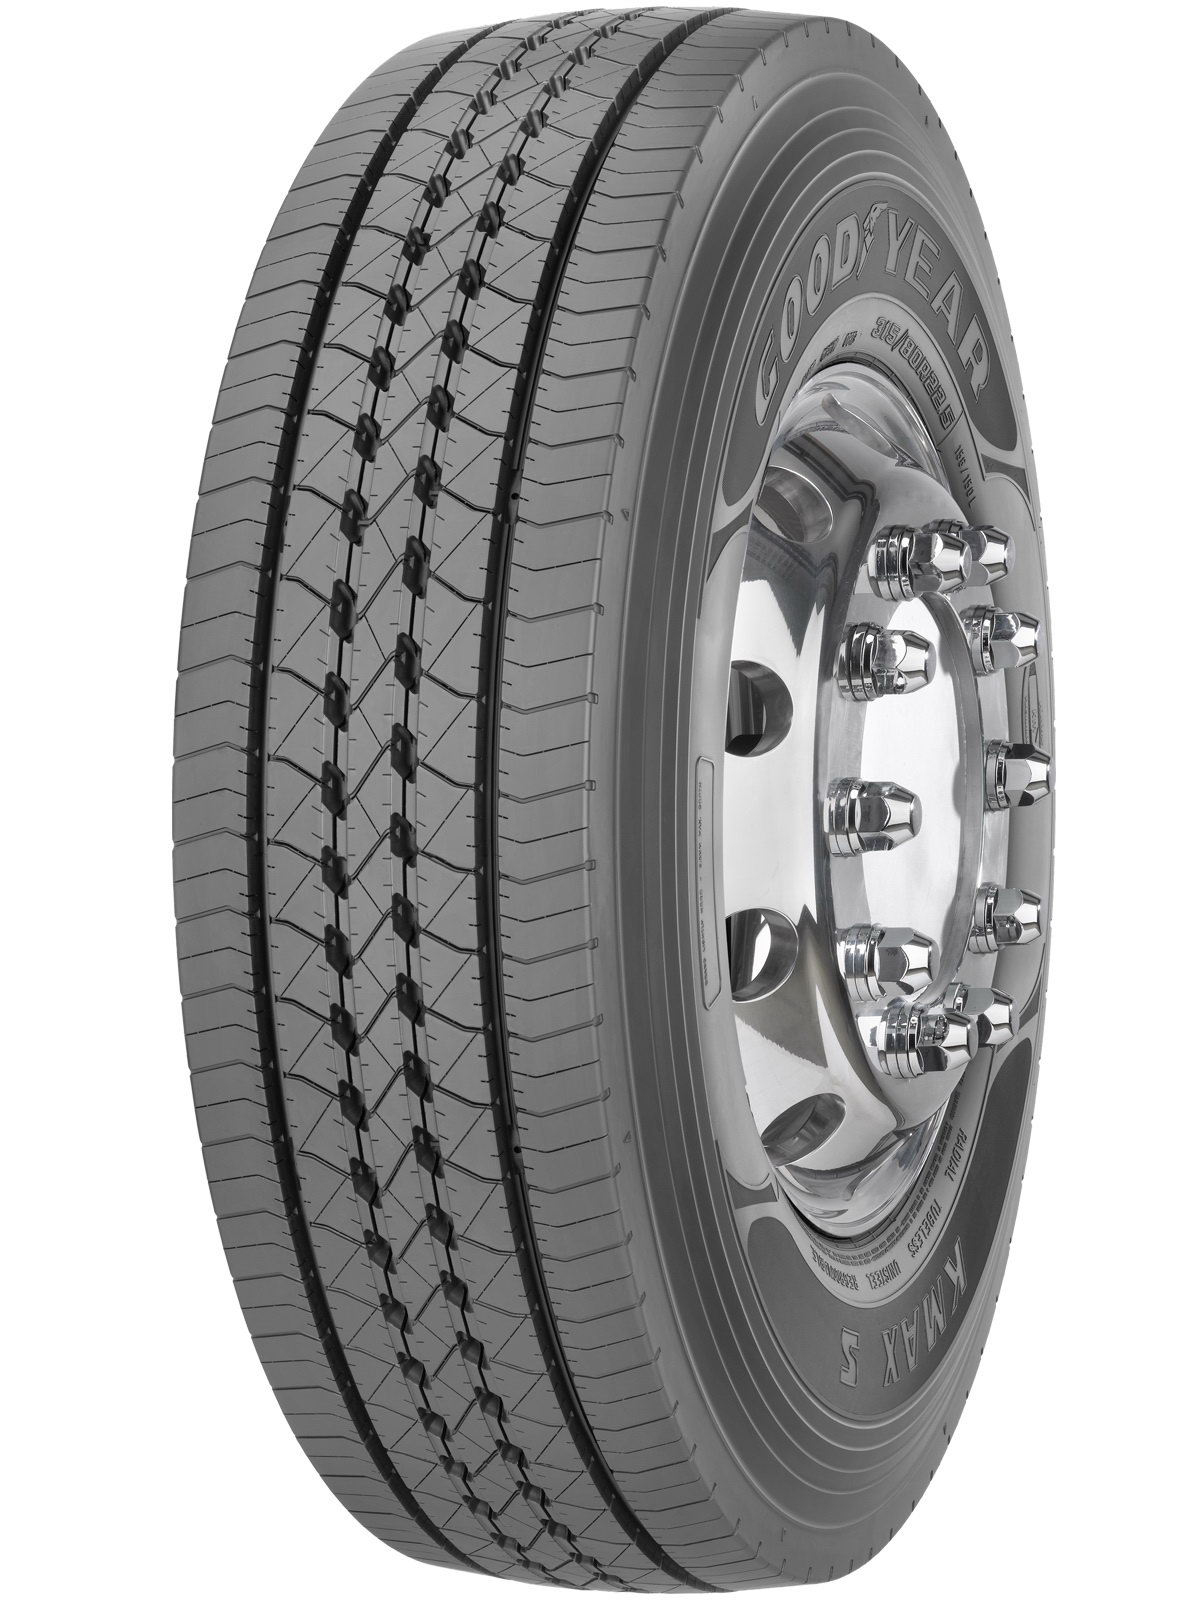 Anvelope trailer GOODYEAR KMAX S 355/50 R22.5 156K